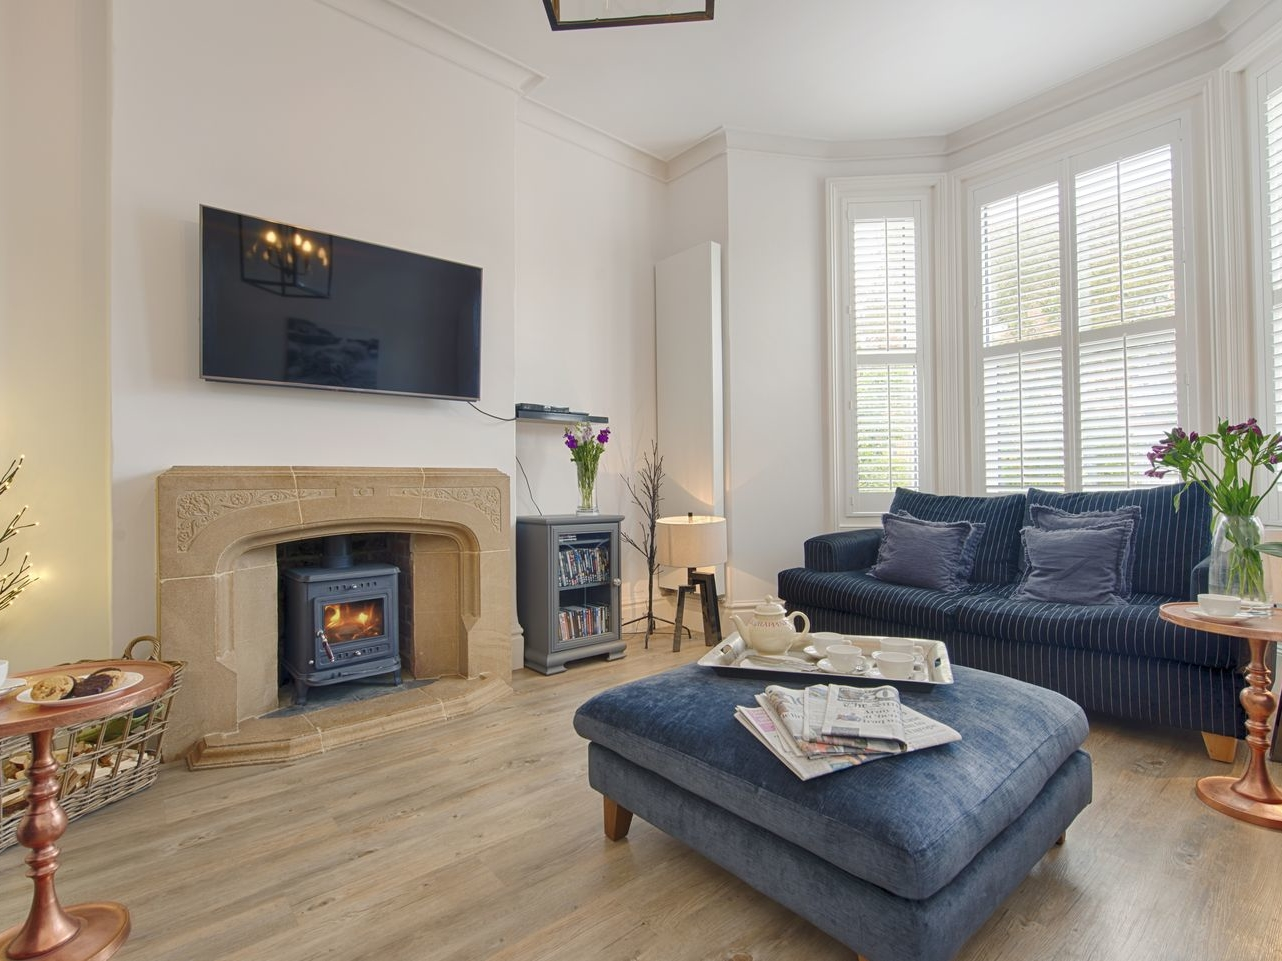 6 bedroom Cottage for rent in Seaton, Cornwall